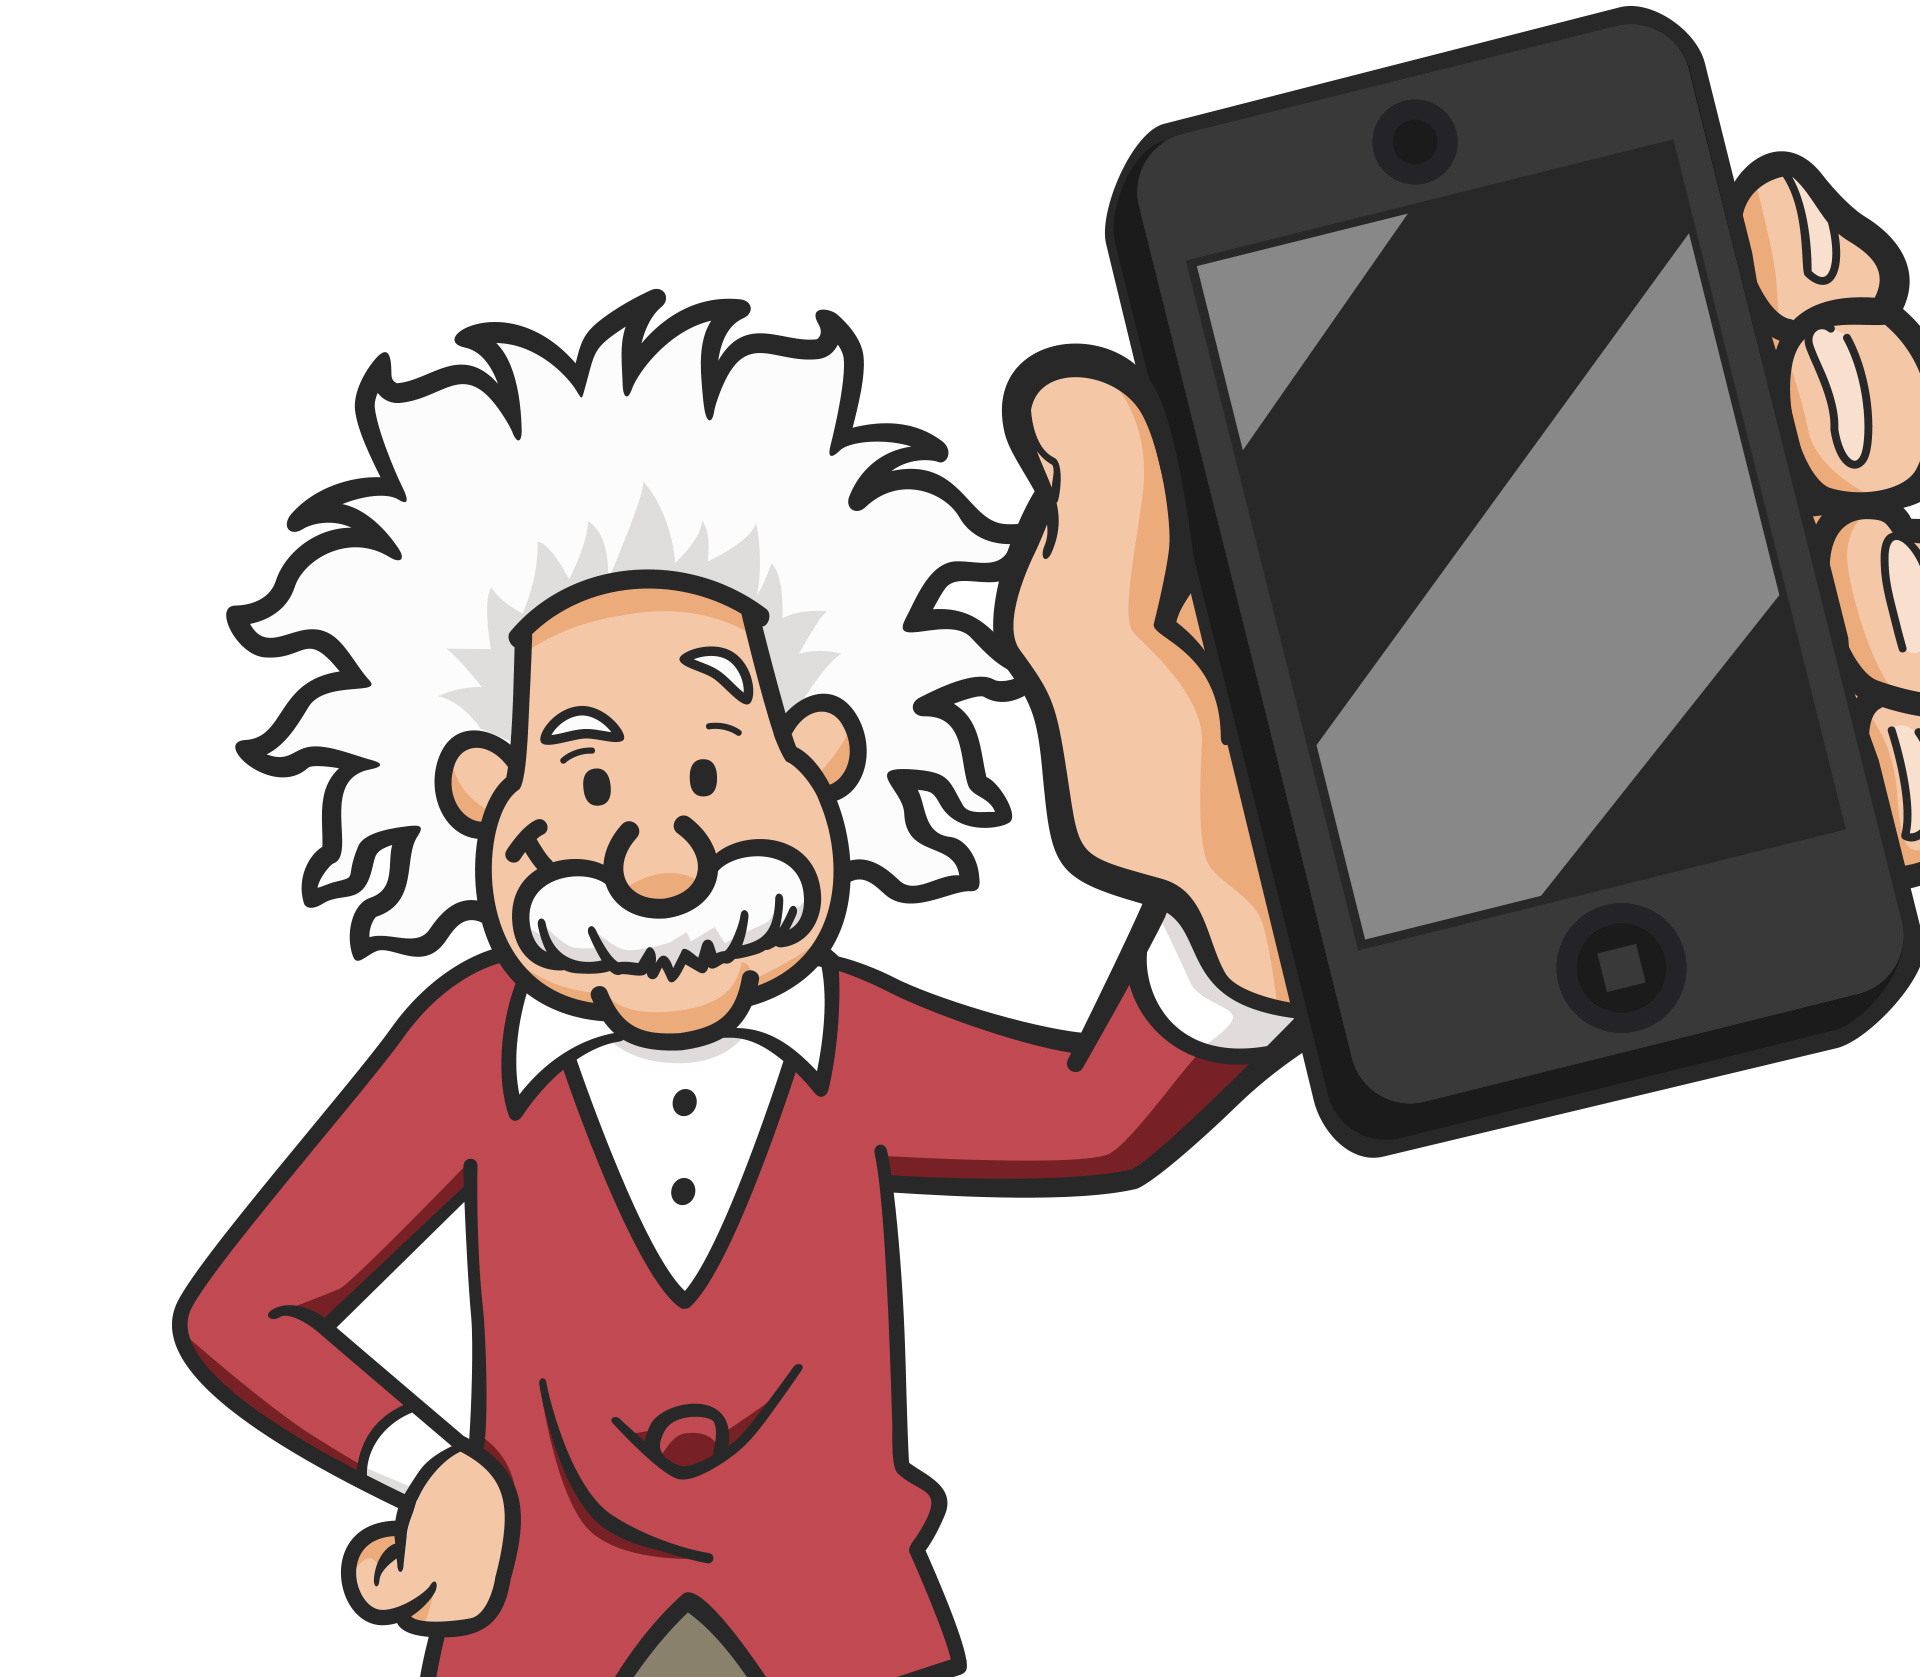 einstein_avatar_illustration_phone